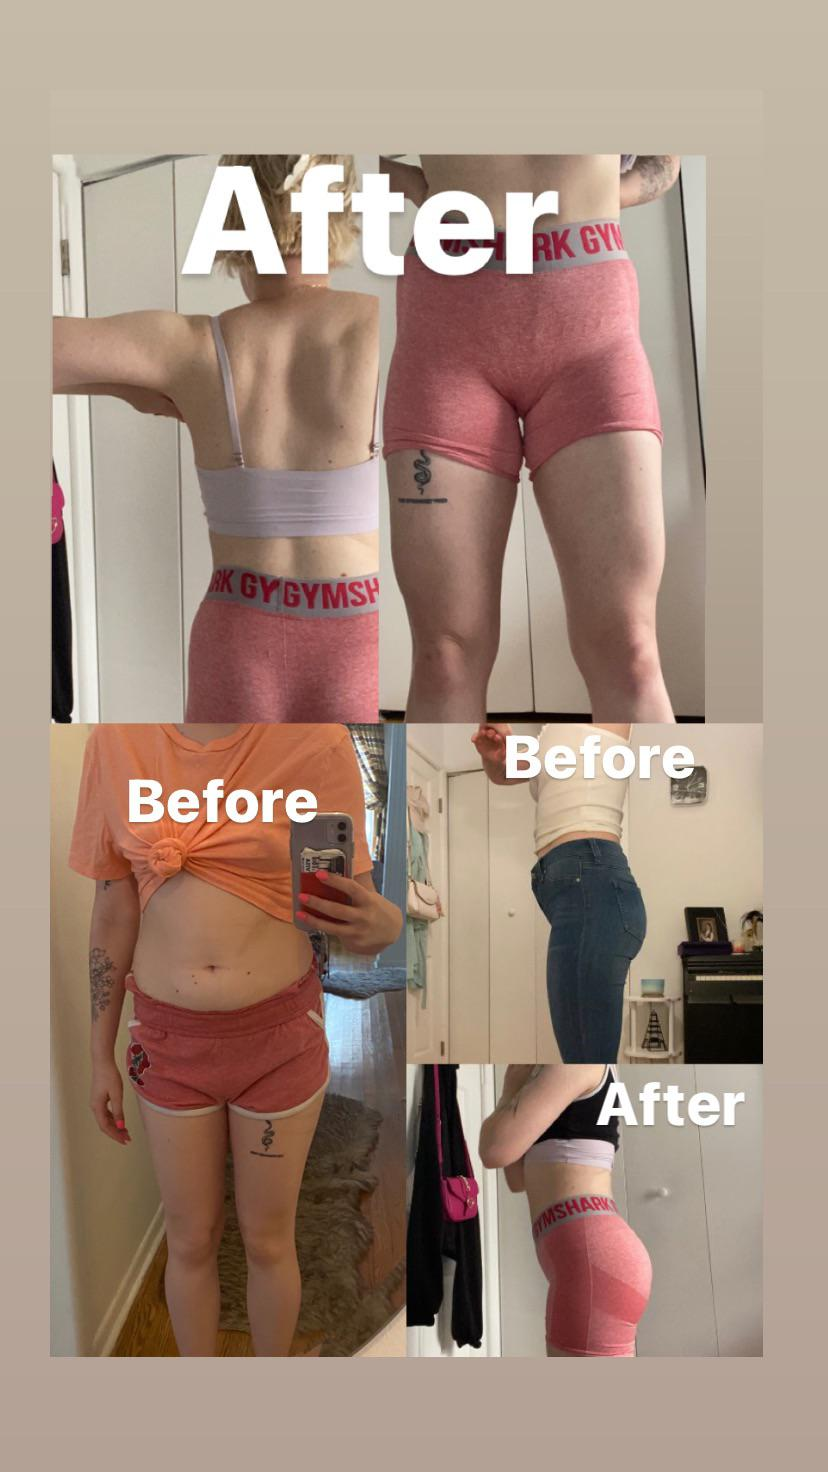 Before and After 20 lbs Muscle Gain 5 foot 4 Female 115 lbs to 135 lbs